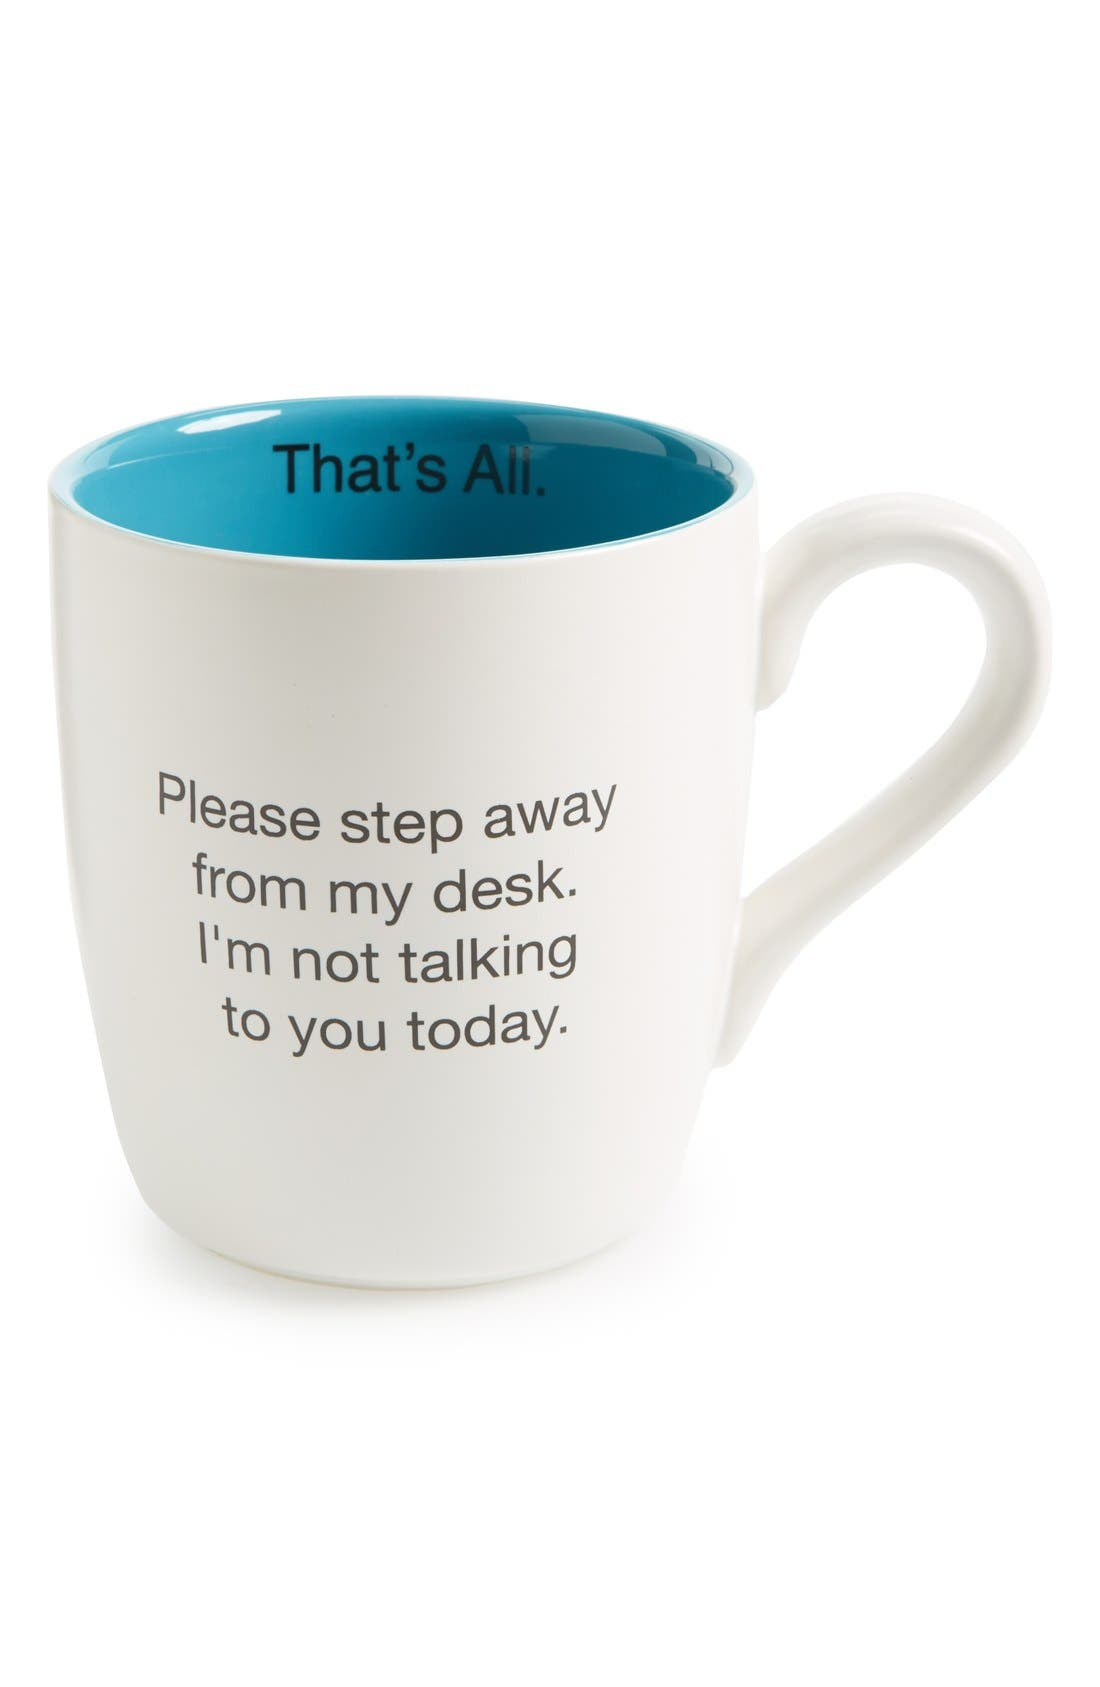 Main Image - Santa Barbara Design 'That's All - Please Step Away From My Desk' Mug